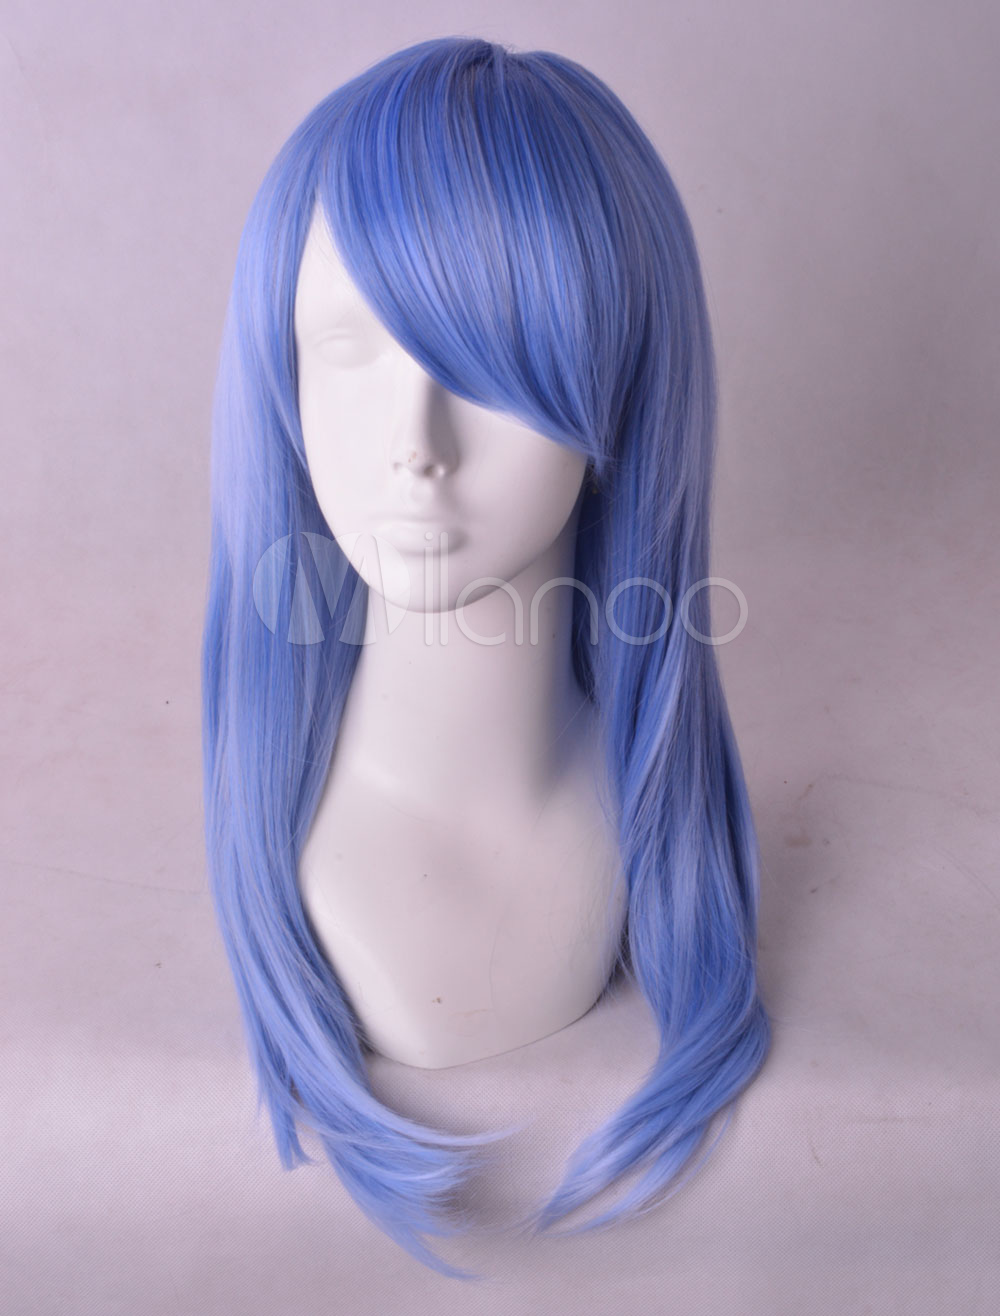 Harajuku Style Cosplay Wig Illusion Blue Wig Halloween